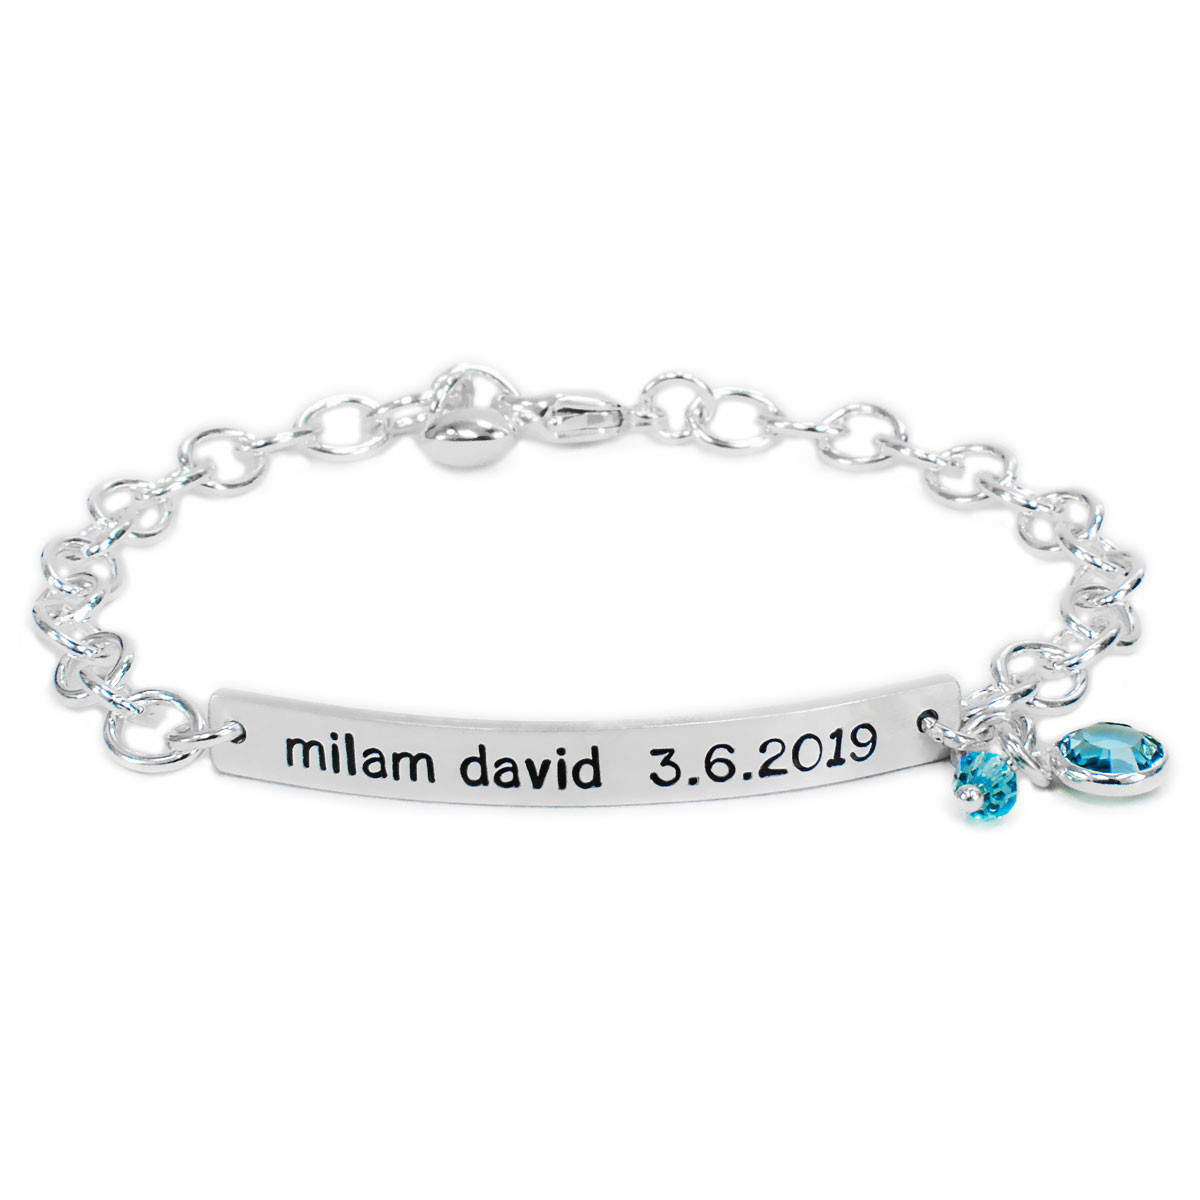 Hand stamped ID Bracelet made from sterling silver, shown with birthstone on white